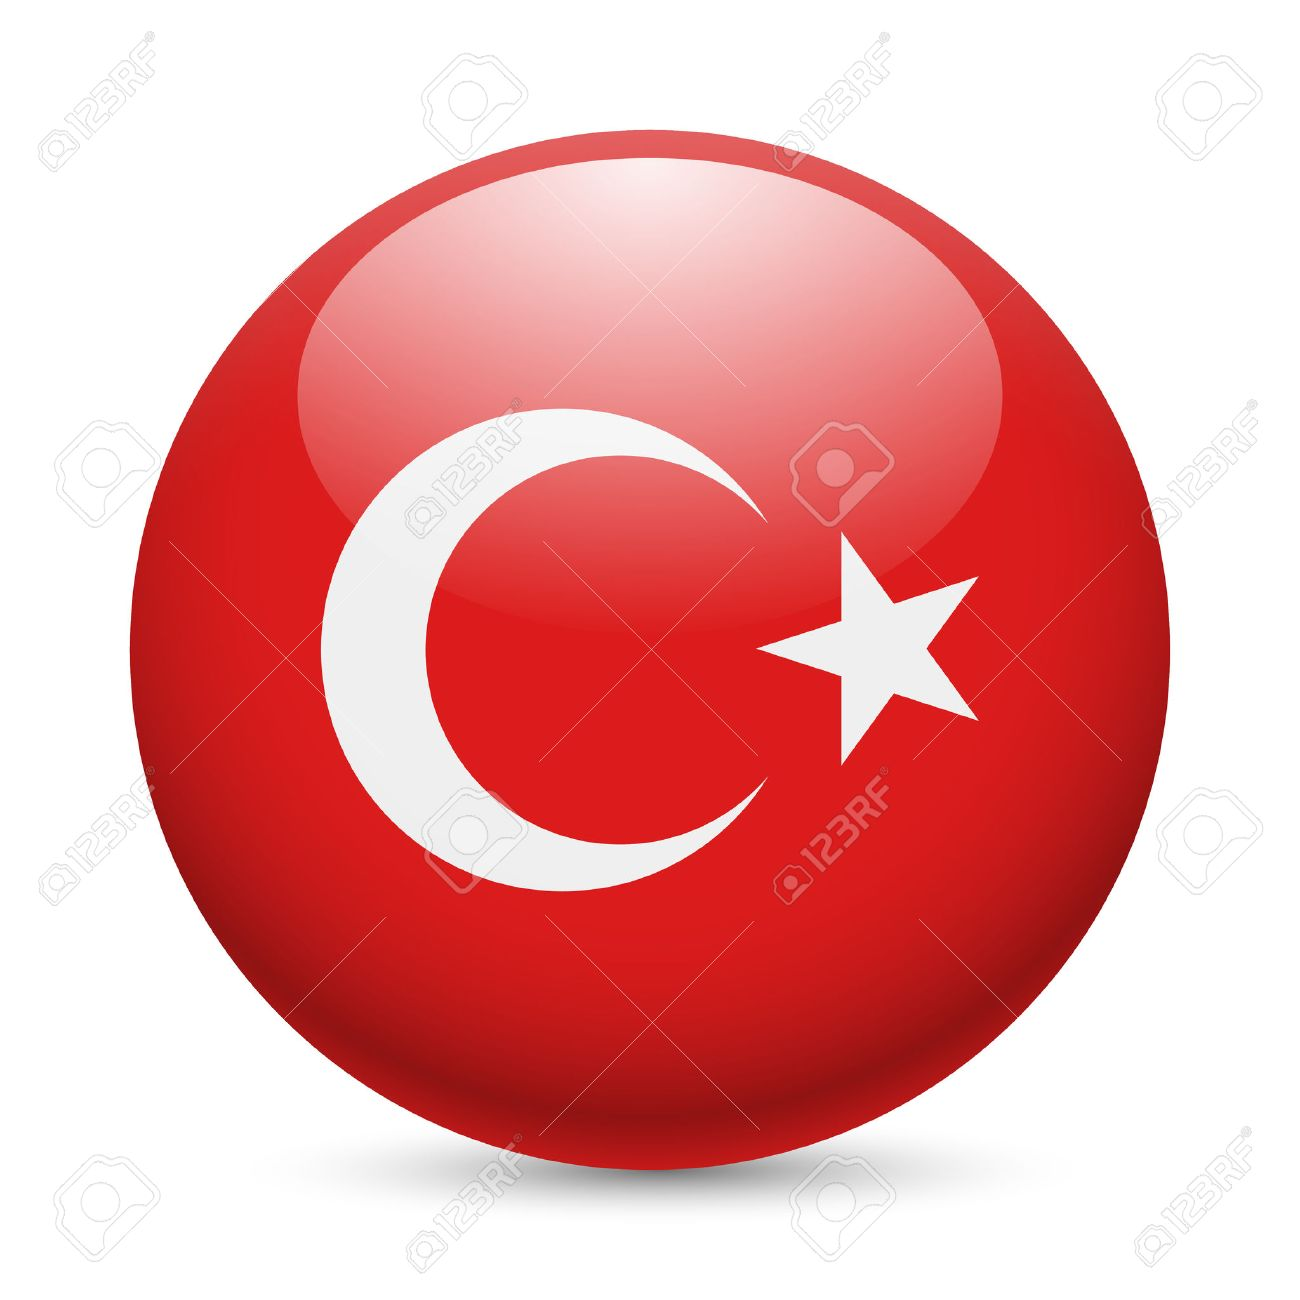 flag of turkey as round glossy icon button with turkish flag